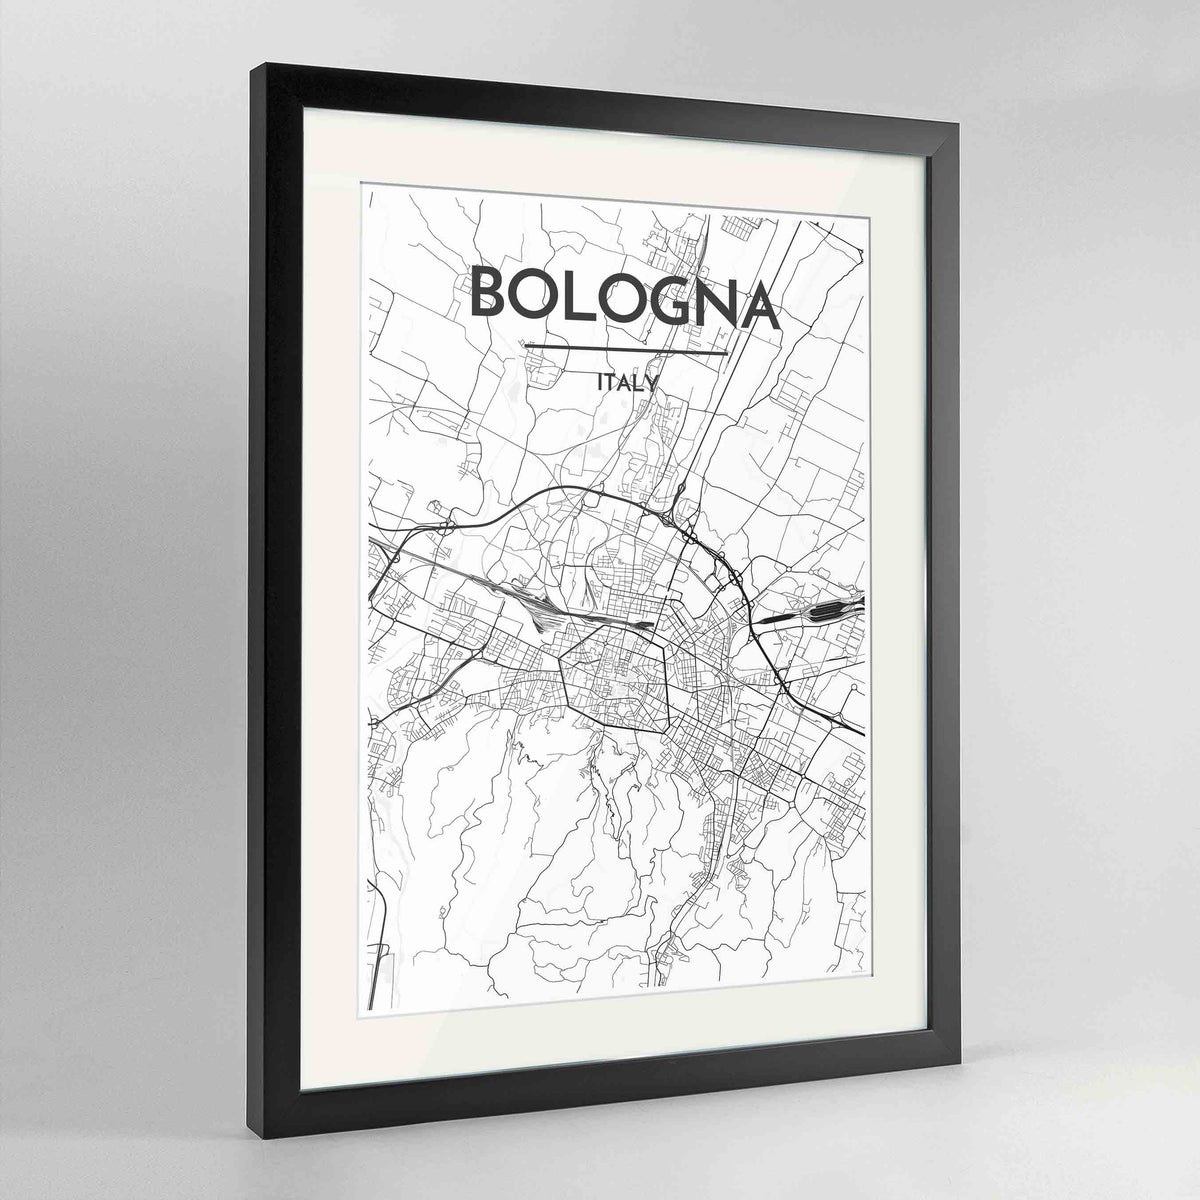 "Framed Bologna City Map 24x36"" Contemporary Black frame Point Two Design Group"